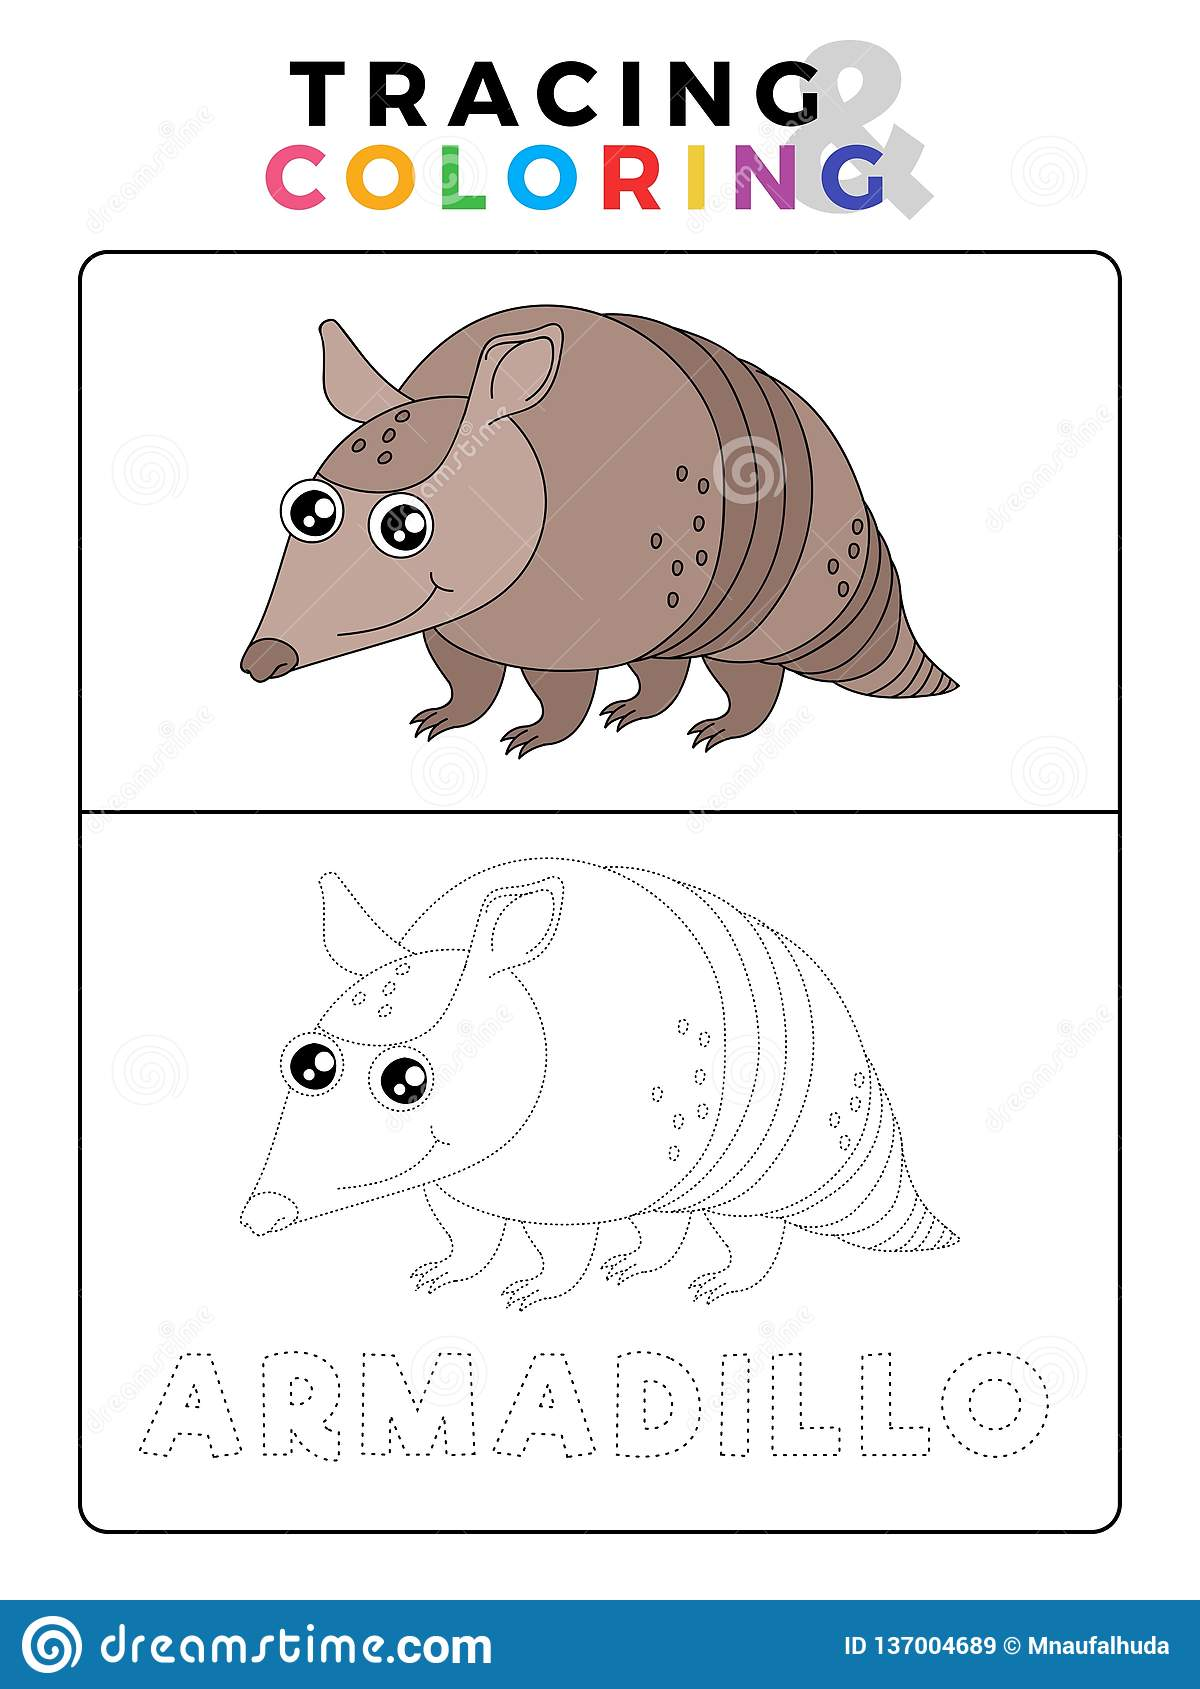 Funny Anteater Funny Armadillo Animal Tracing And Coloring